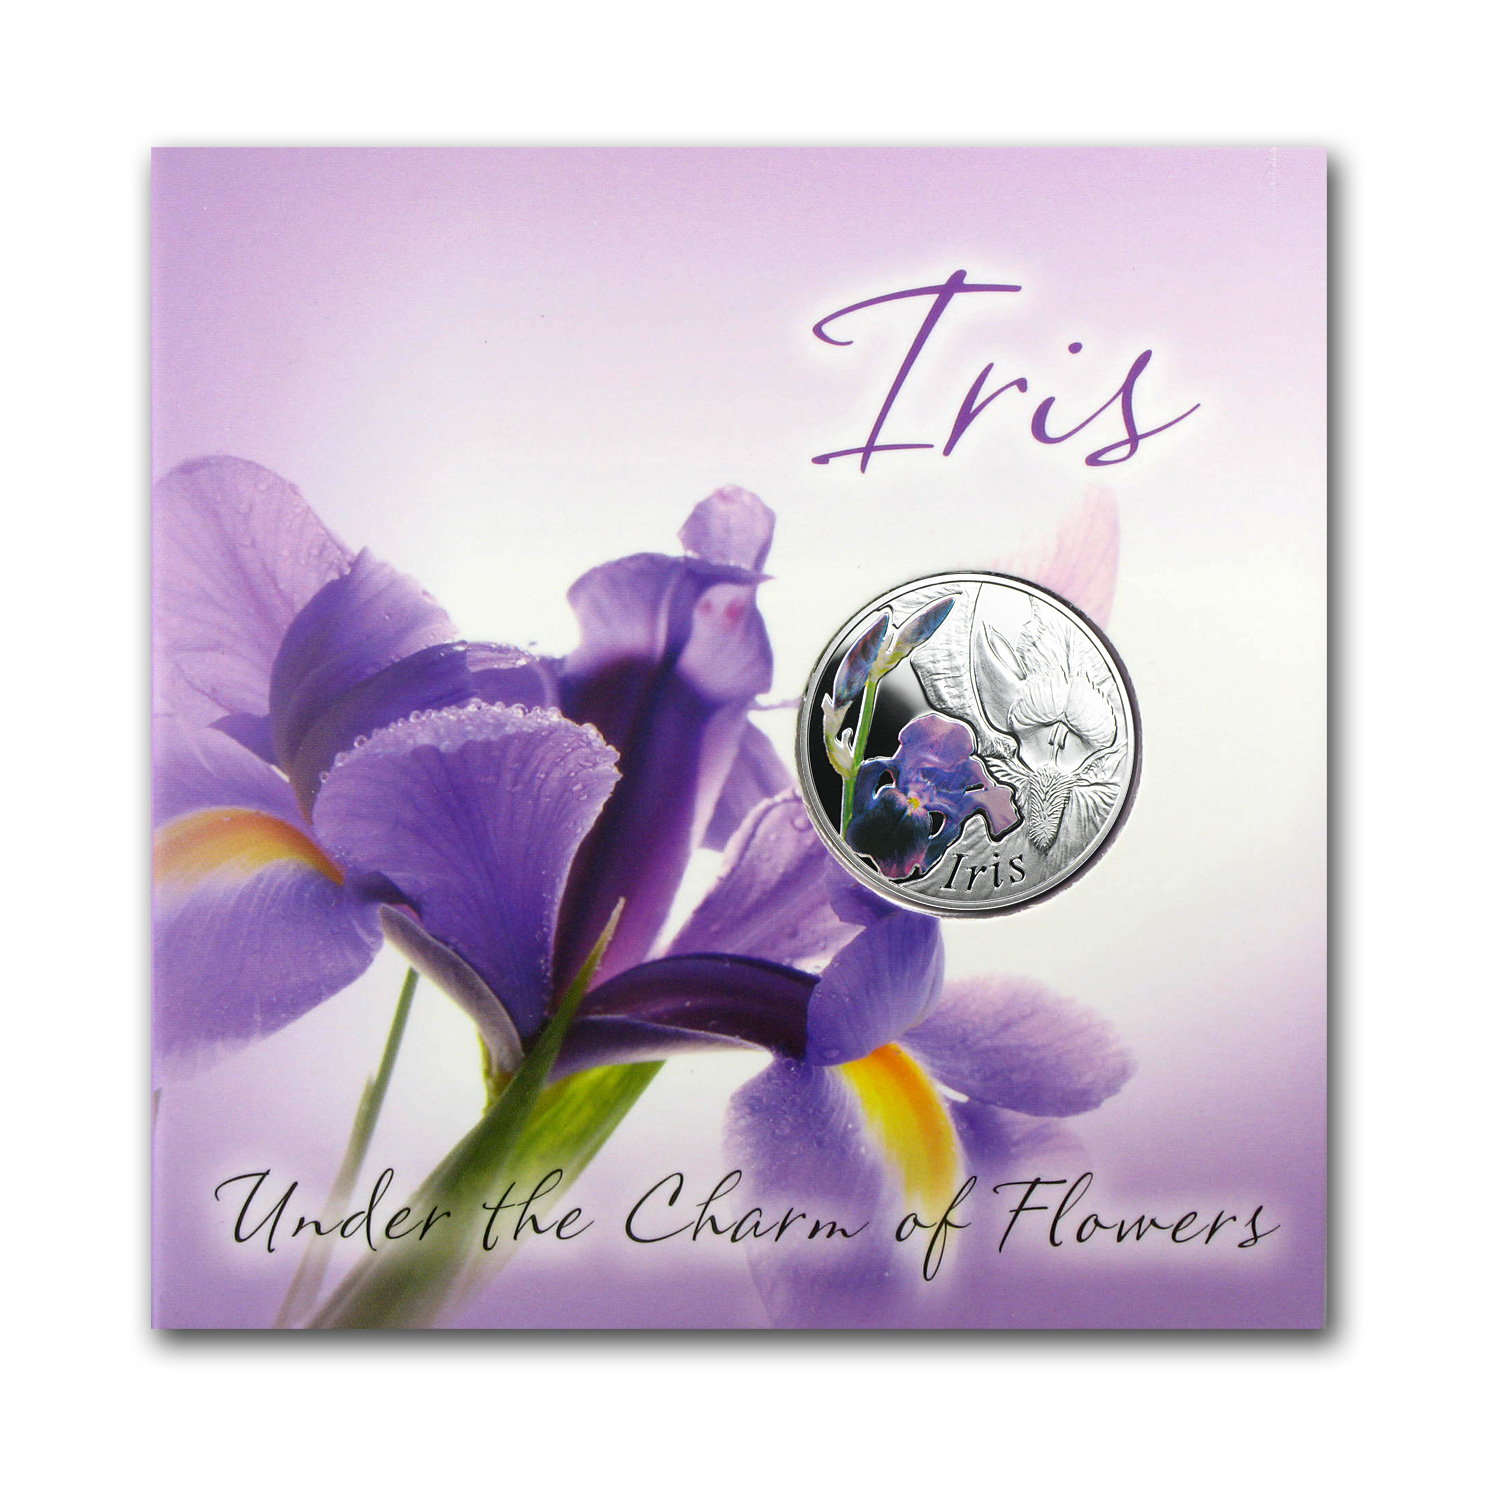 2013 Belarus Silver Proof Under the Charm of Flowers Iris